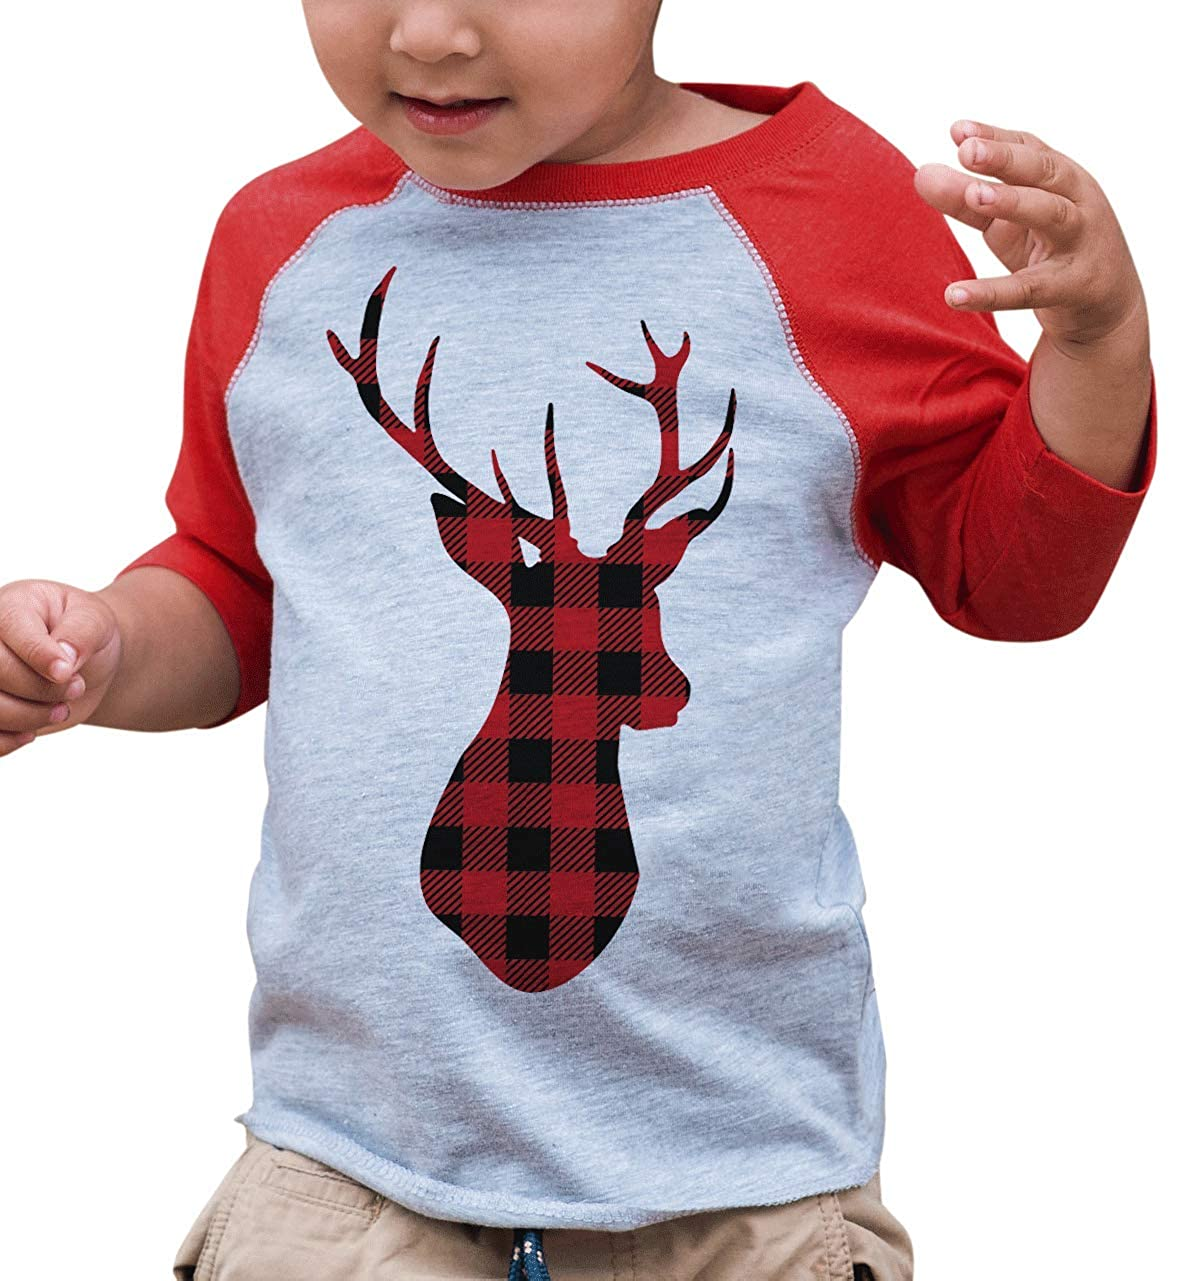 7 ate 9 Apparel Kids Plaid Deer Christmas Raglan Shirt Red